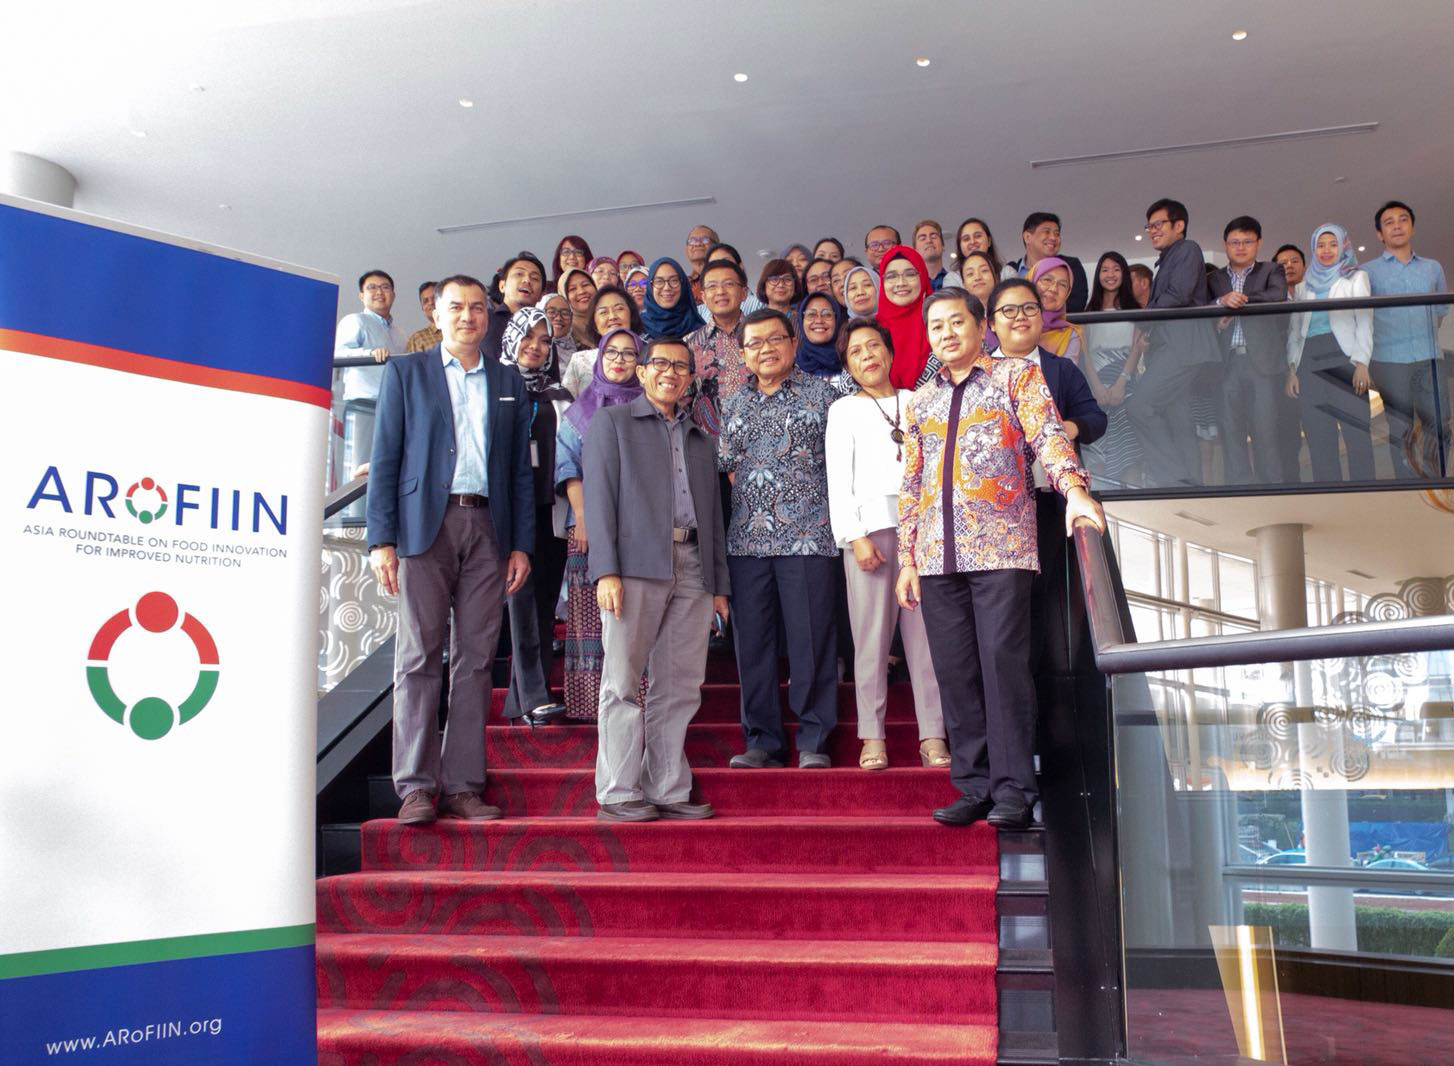 Positive Actions for A Healthier Asia at the 4th ARoFIIN Roundtable